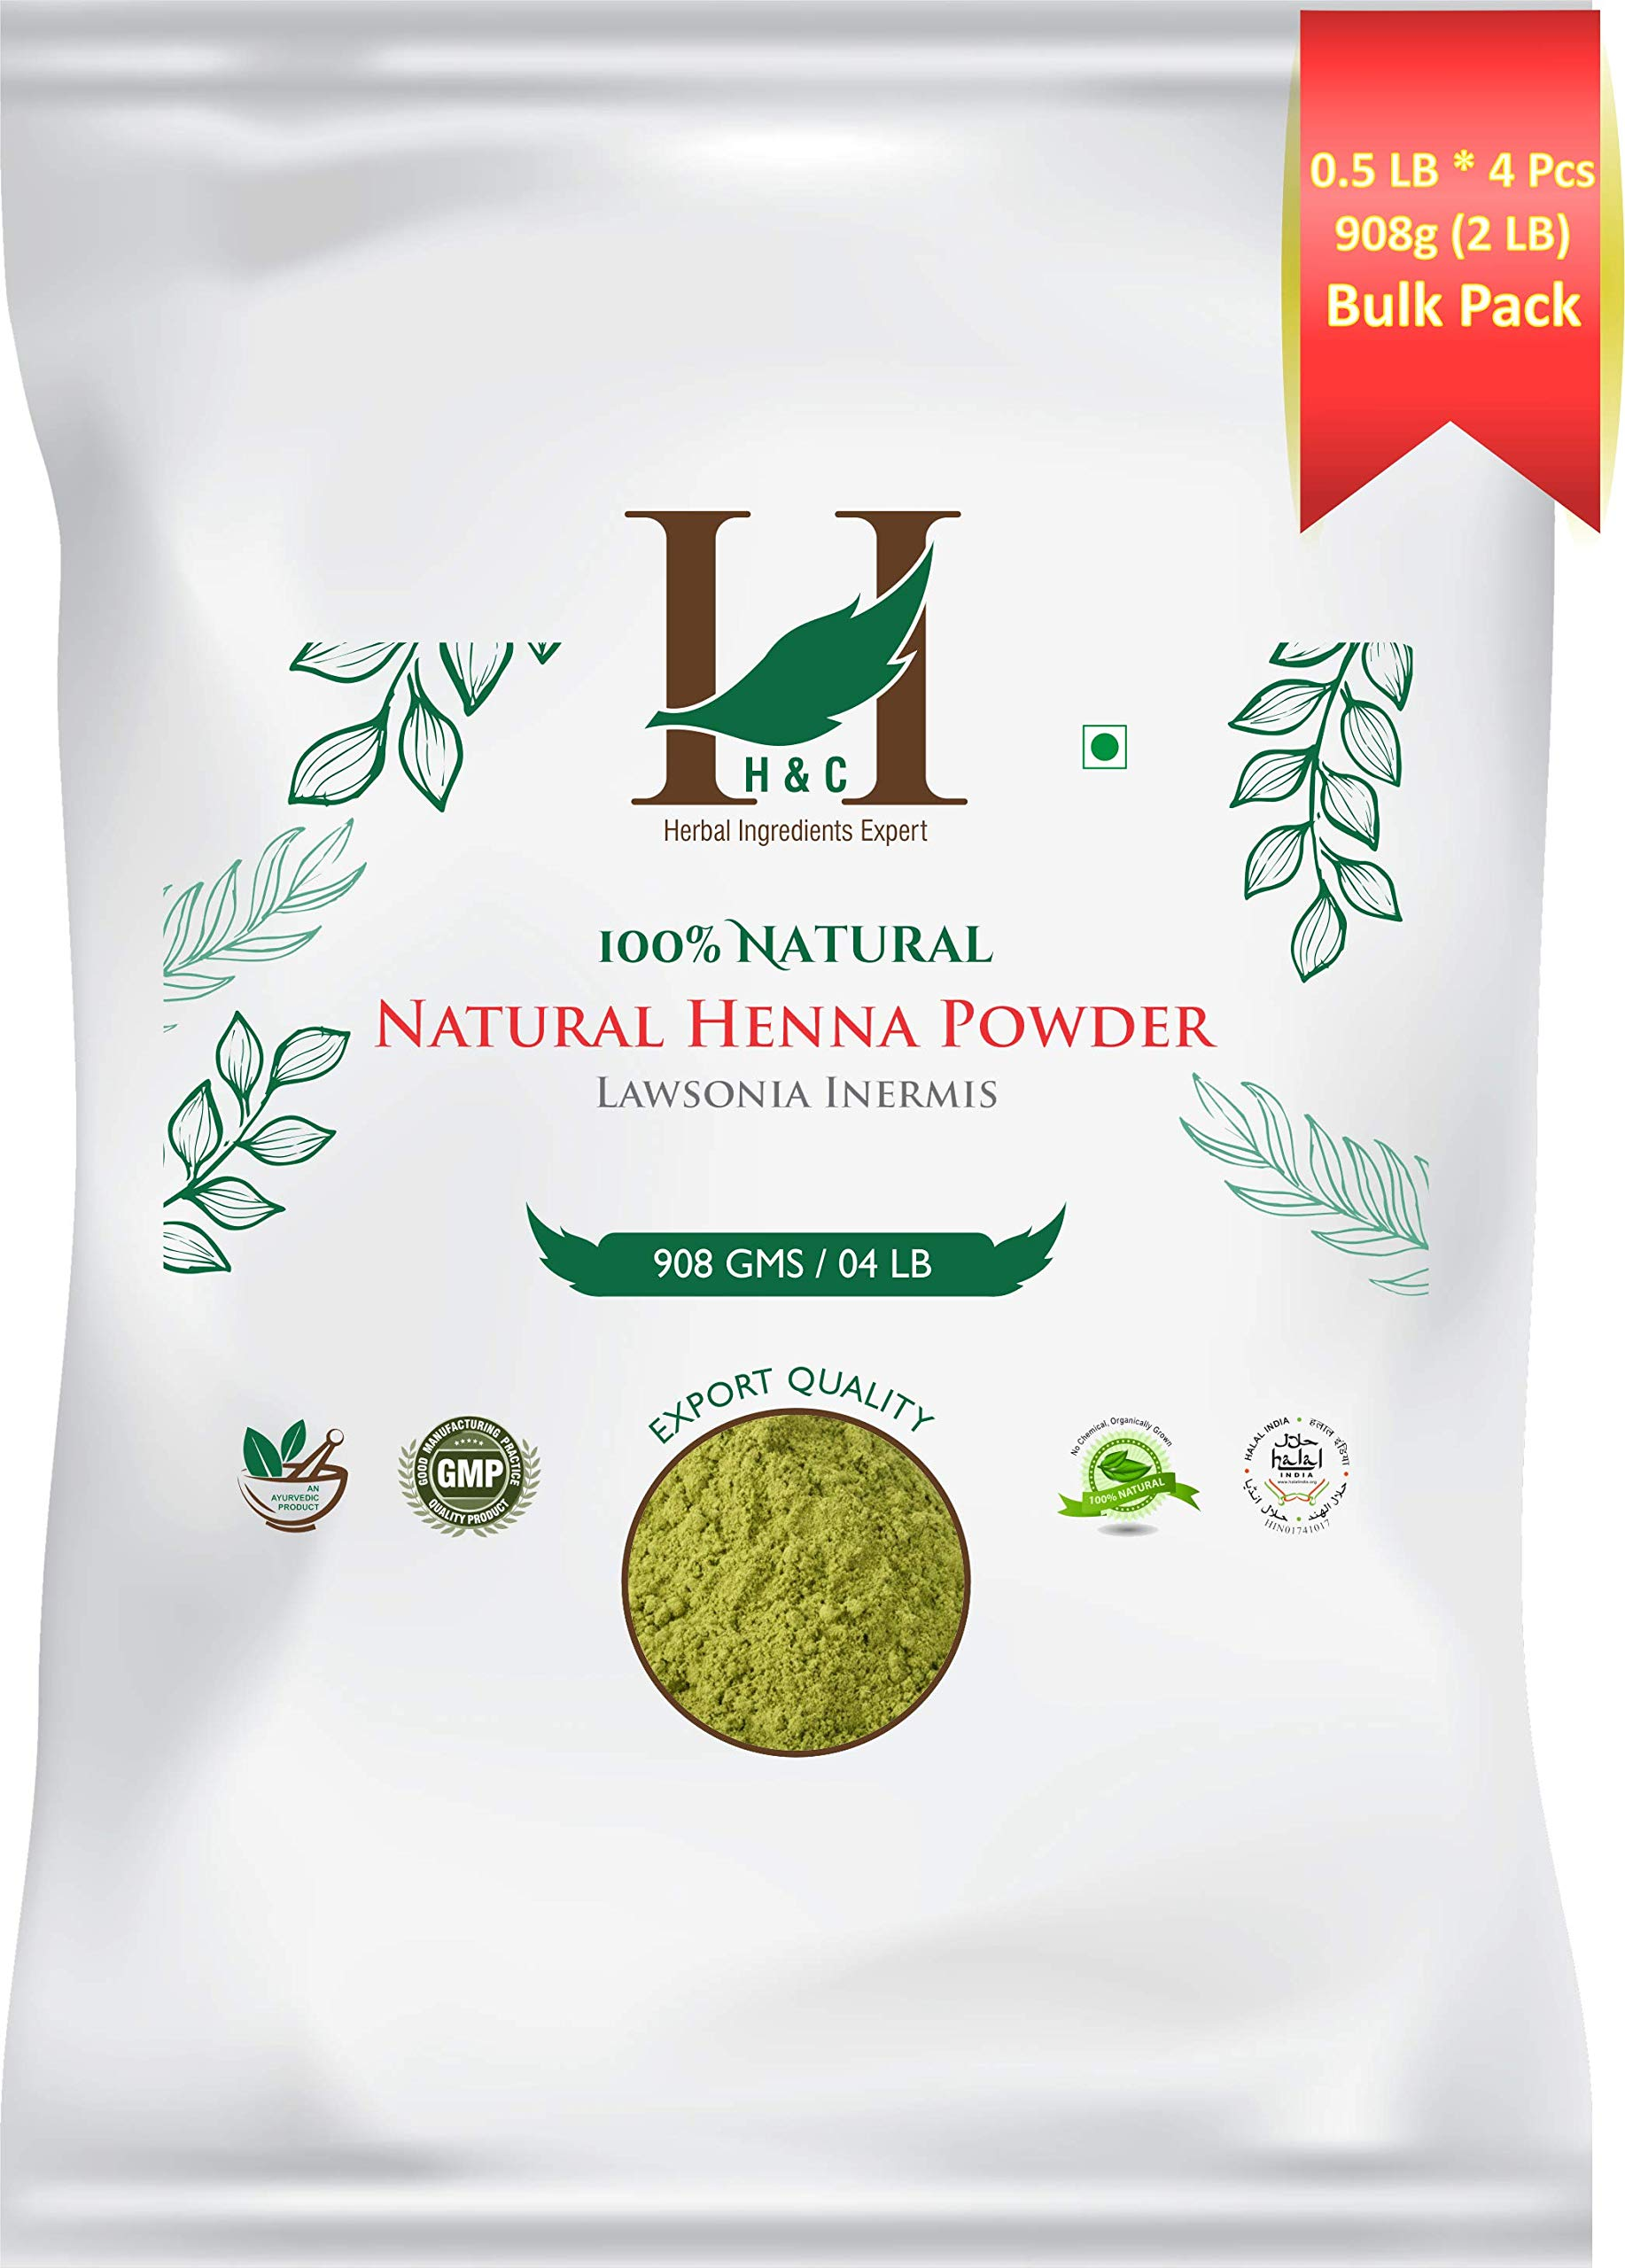 634d3b0ec9db8 100% Natural Organically Cultivated Henna Powder Specially For Hair - Bulk  Pack -Triple Sifted